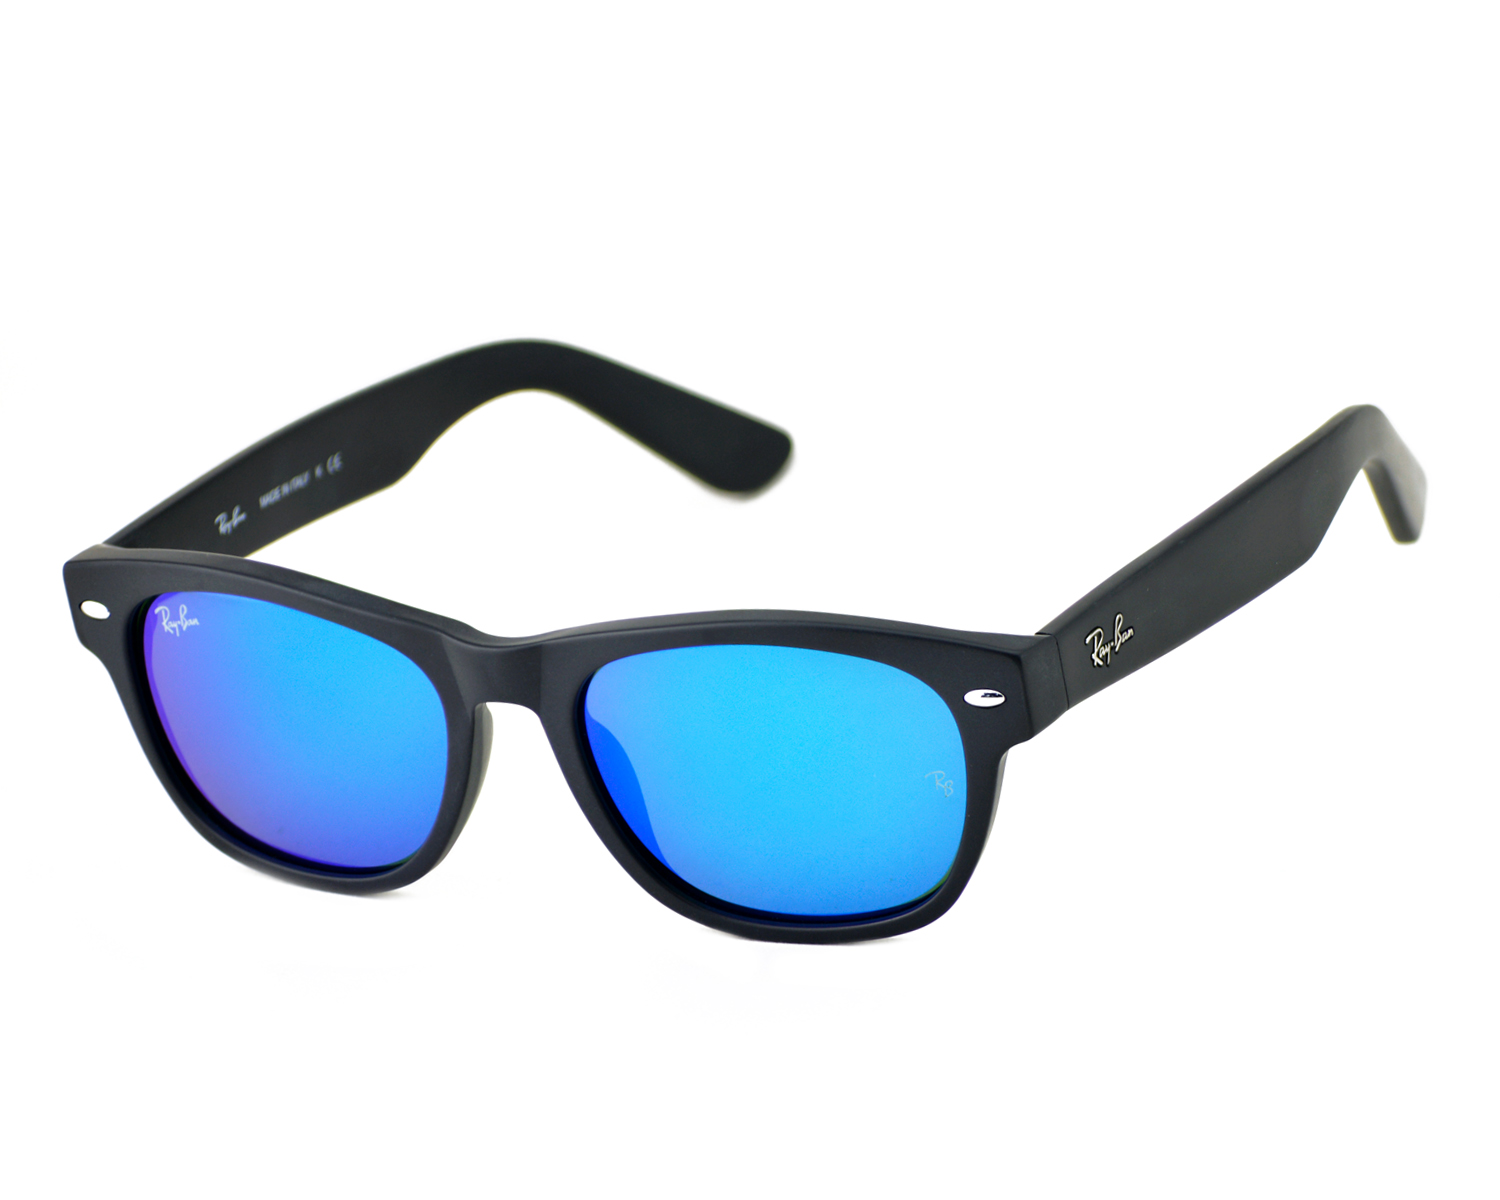 be3e735582 Ray-Ban RB2132 New Wayfarer Flash 622 17 Black  Blue Flash Lens Sunglasses  52mm